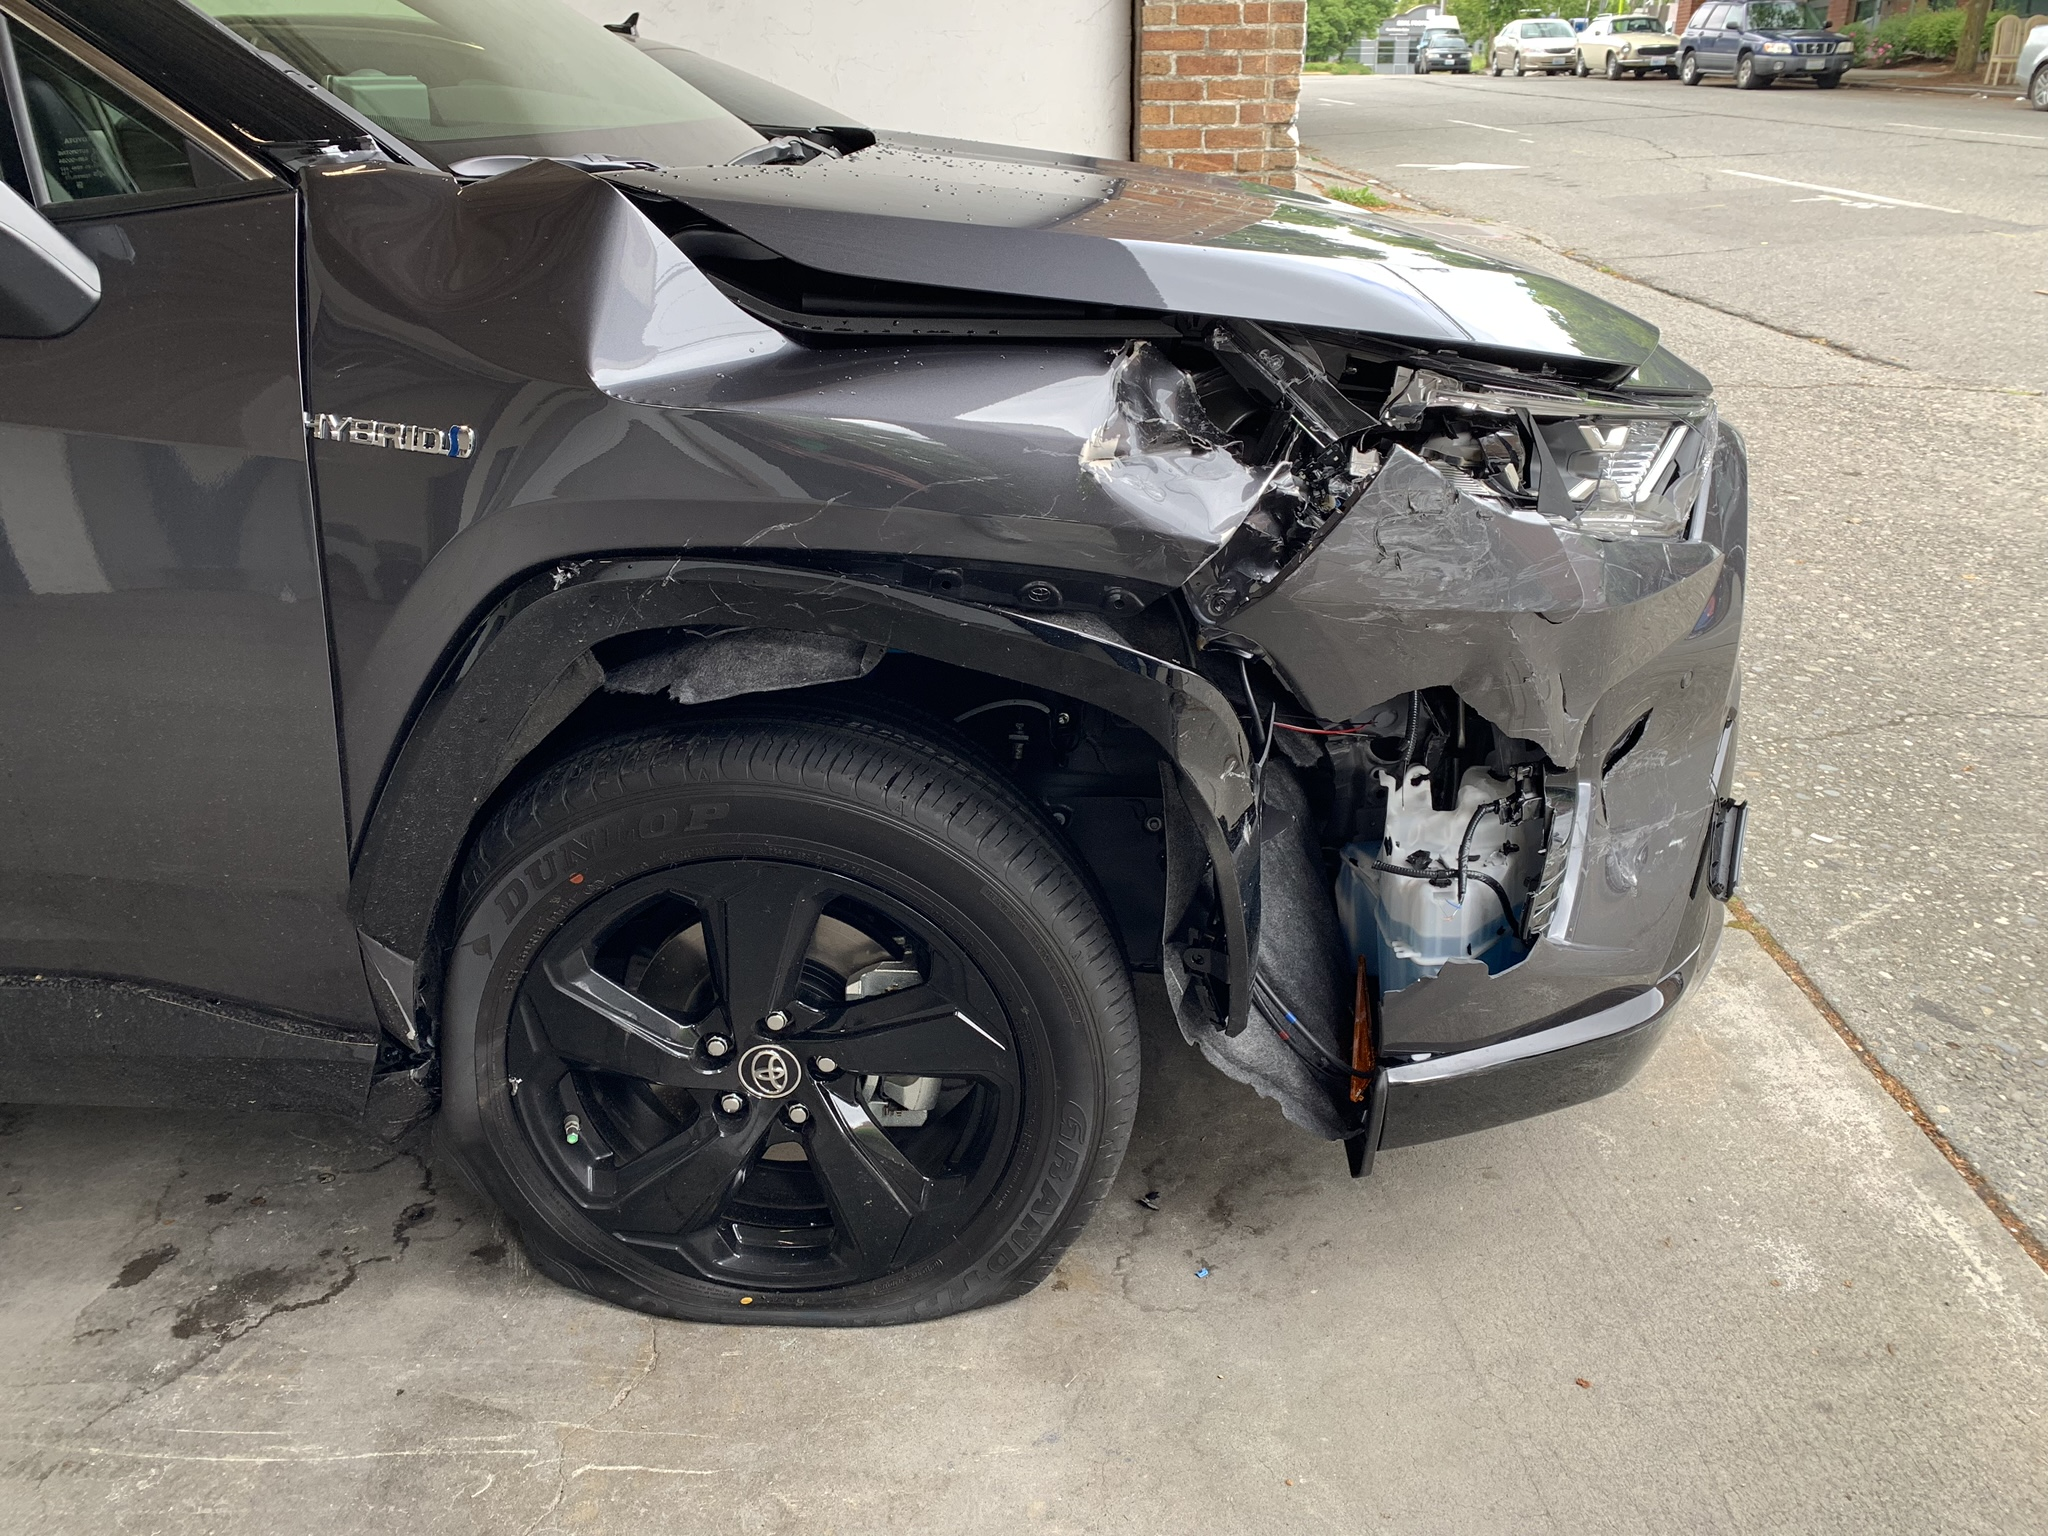 2019 Totoya Rav4 Before